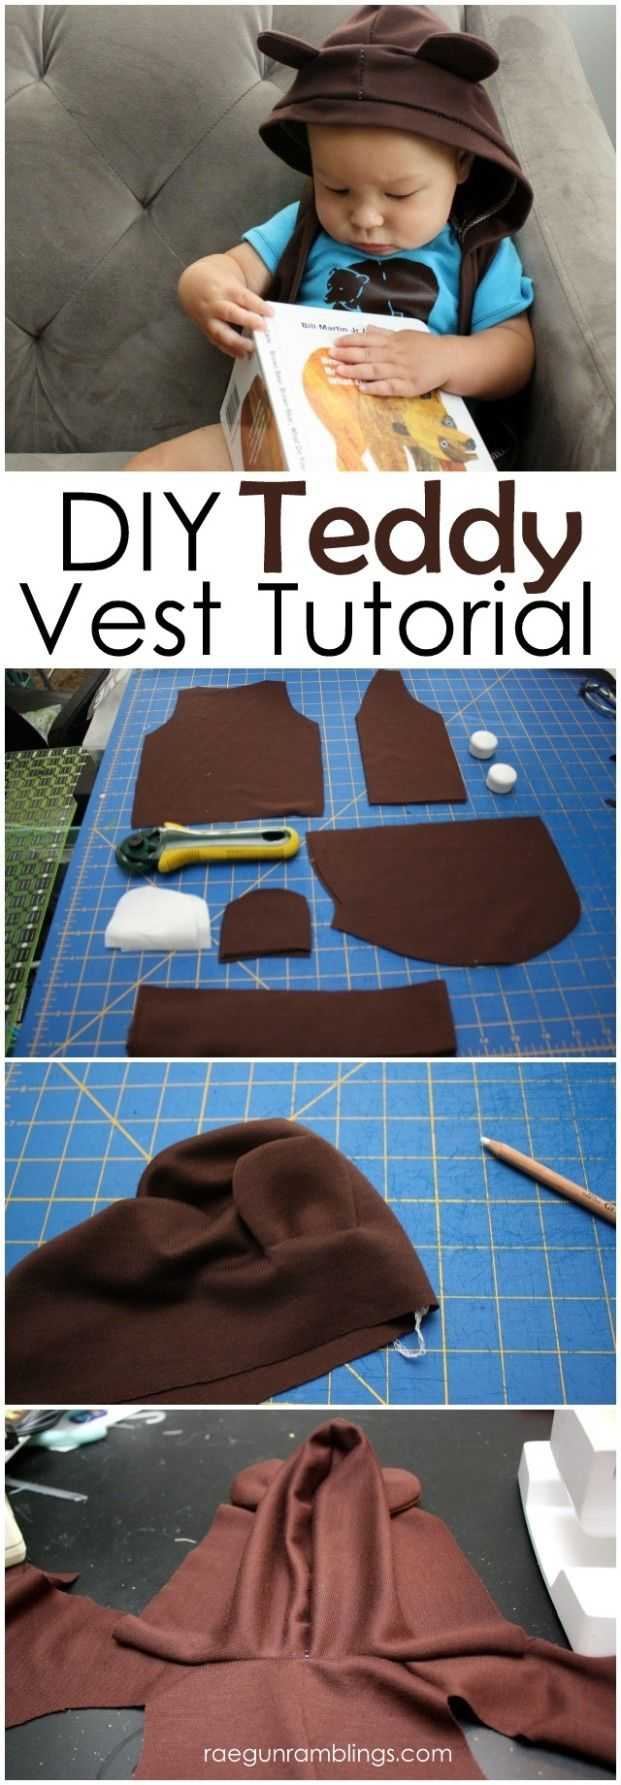 DIY Teddy Vest Tutorial and how to make one in an size - Rae GUn Ramblings